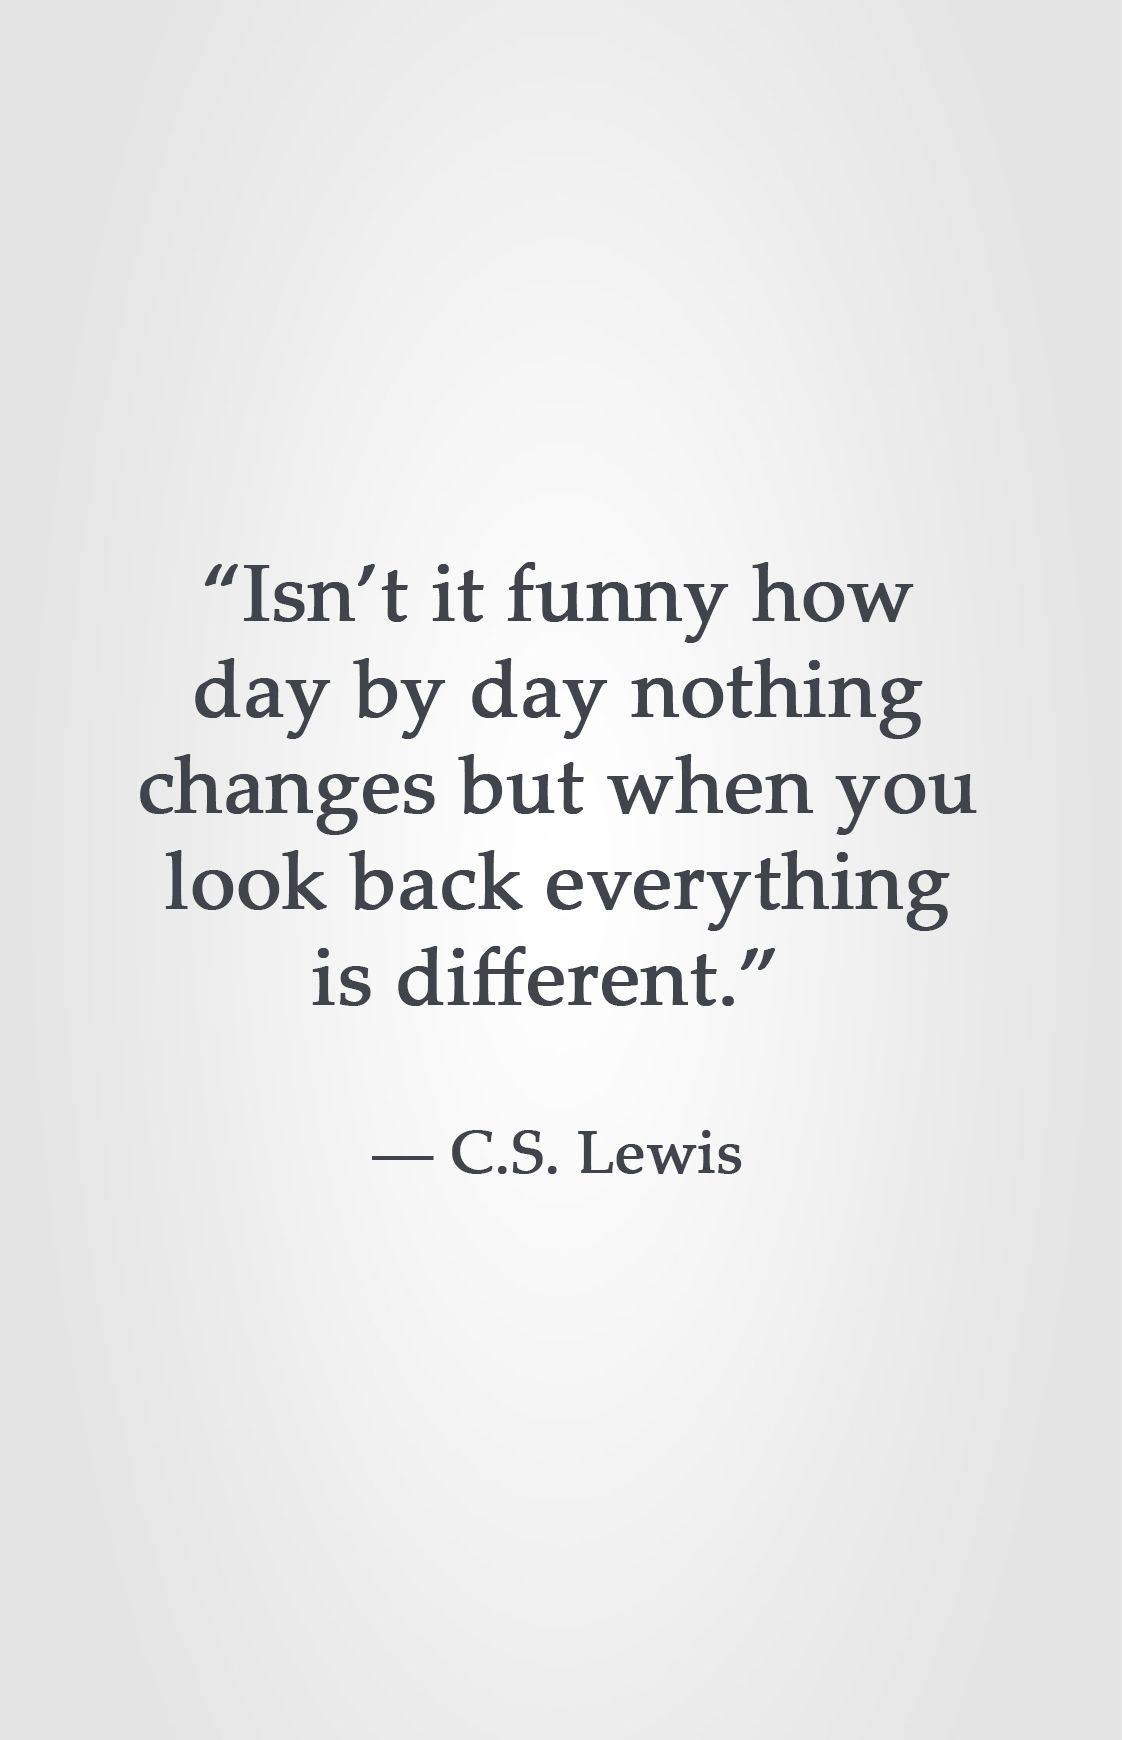 Day By Day Quotes Isn't it funny how day by day nothing changes but when you look  Day By Day Quotes